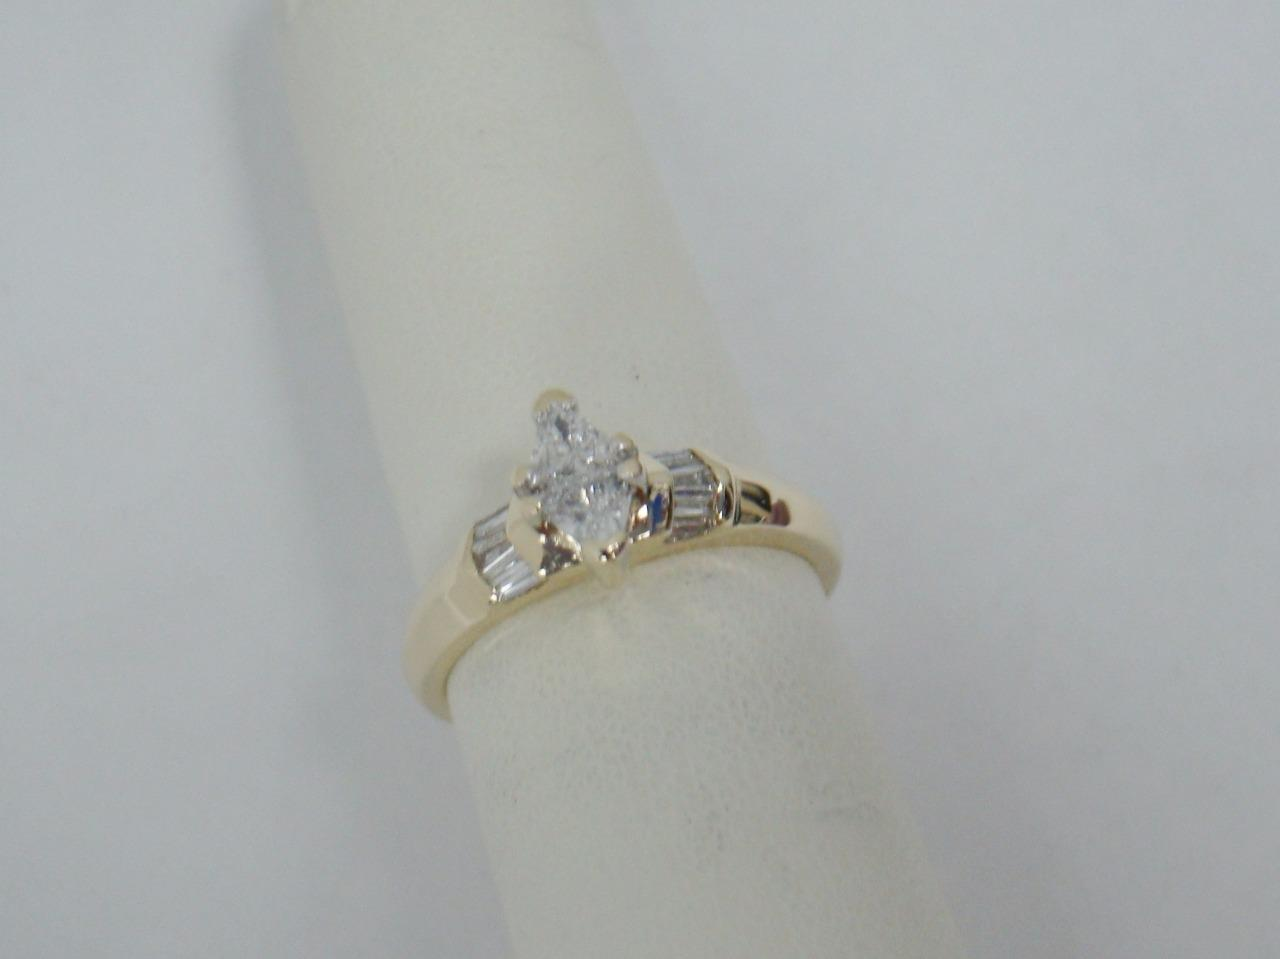 Helzberg Diamonds Ring Sizing